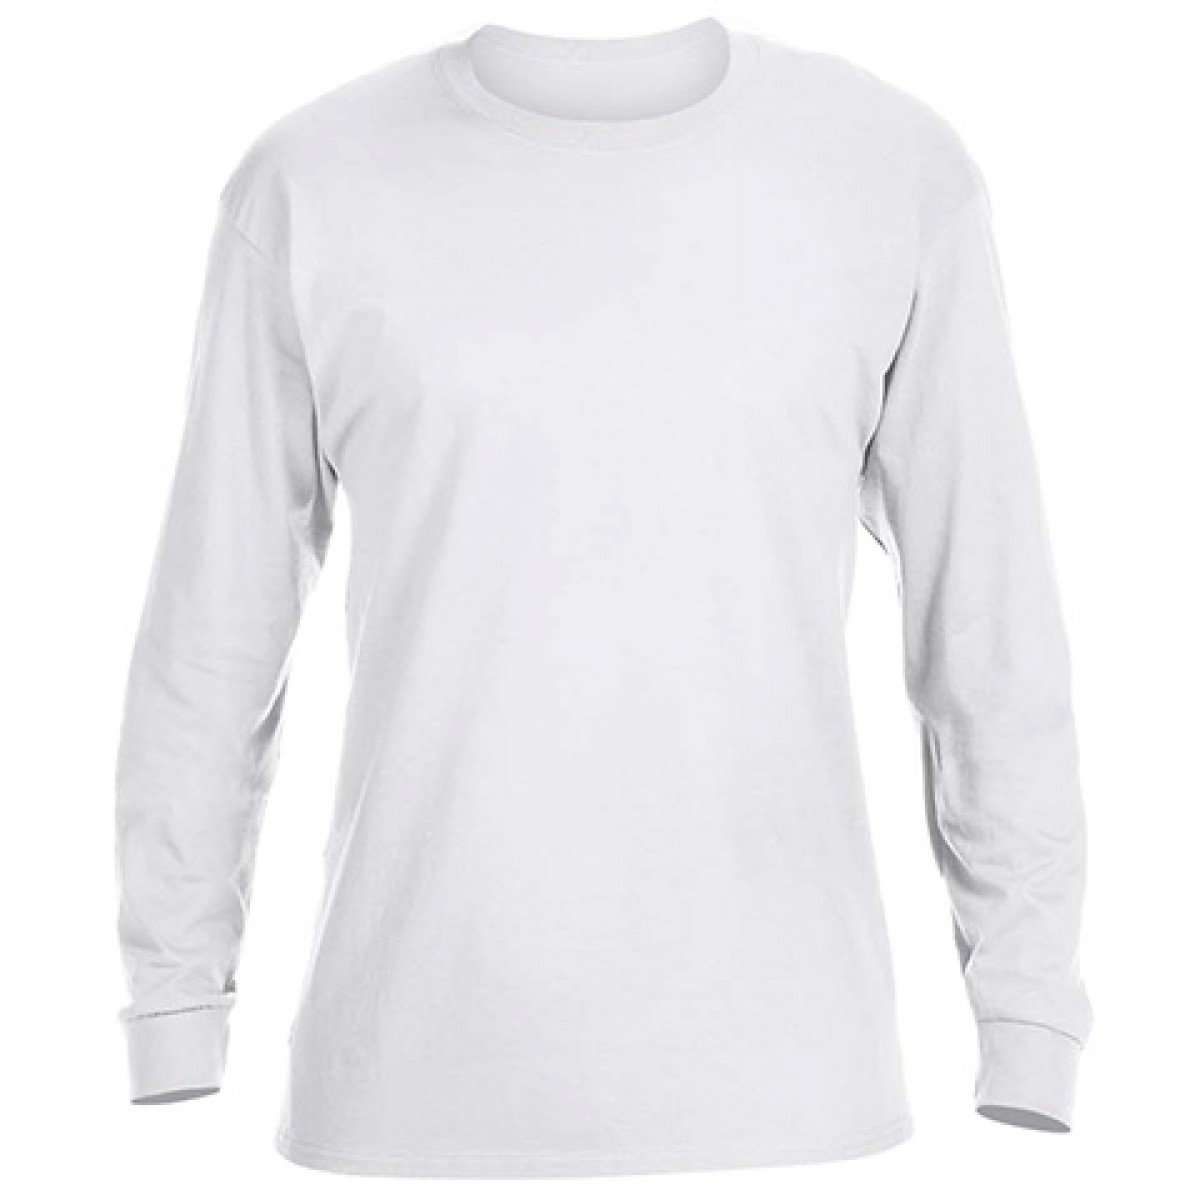 Basic Long Sleeve Crew Neck -White-2XL